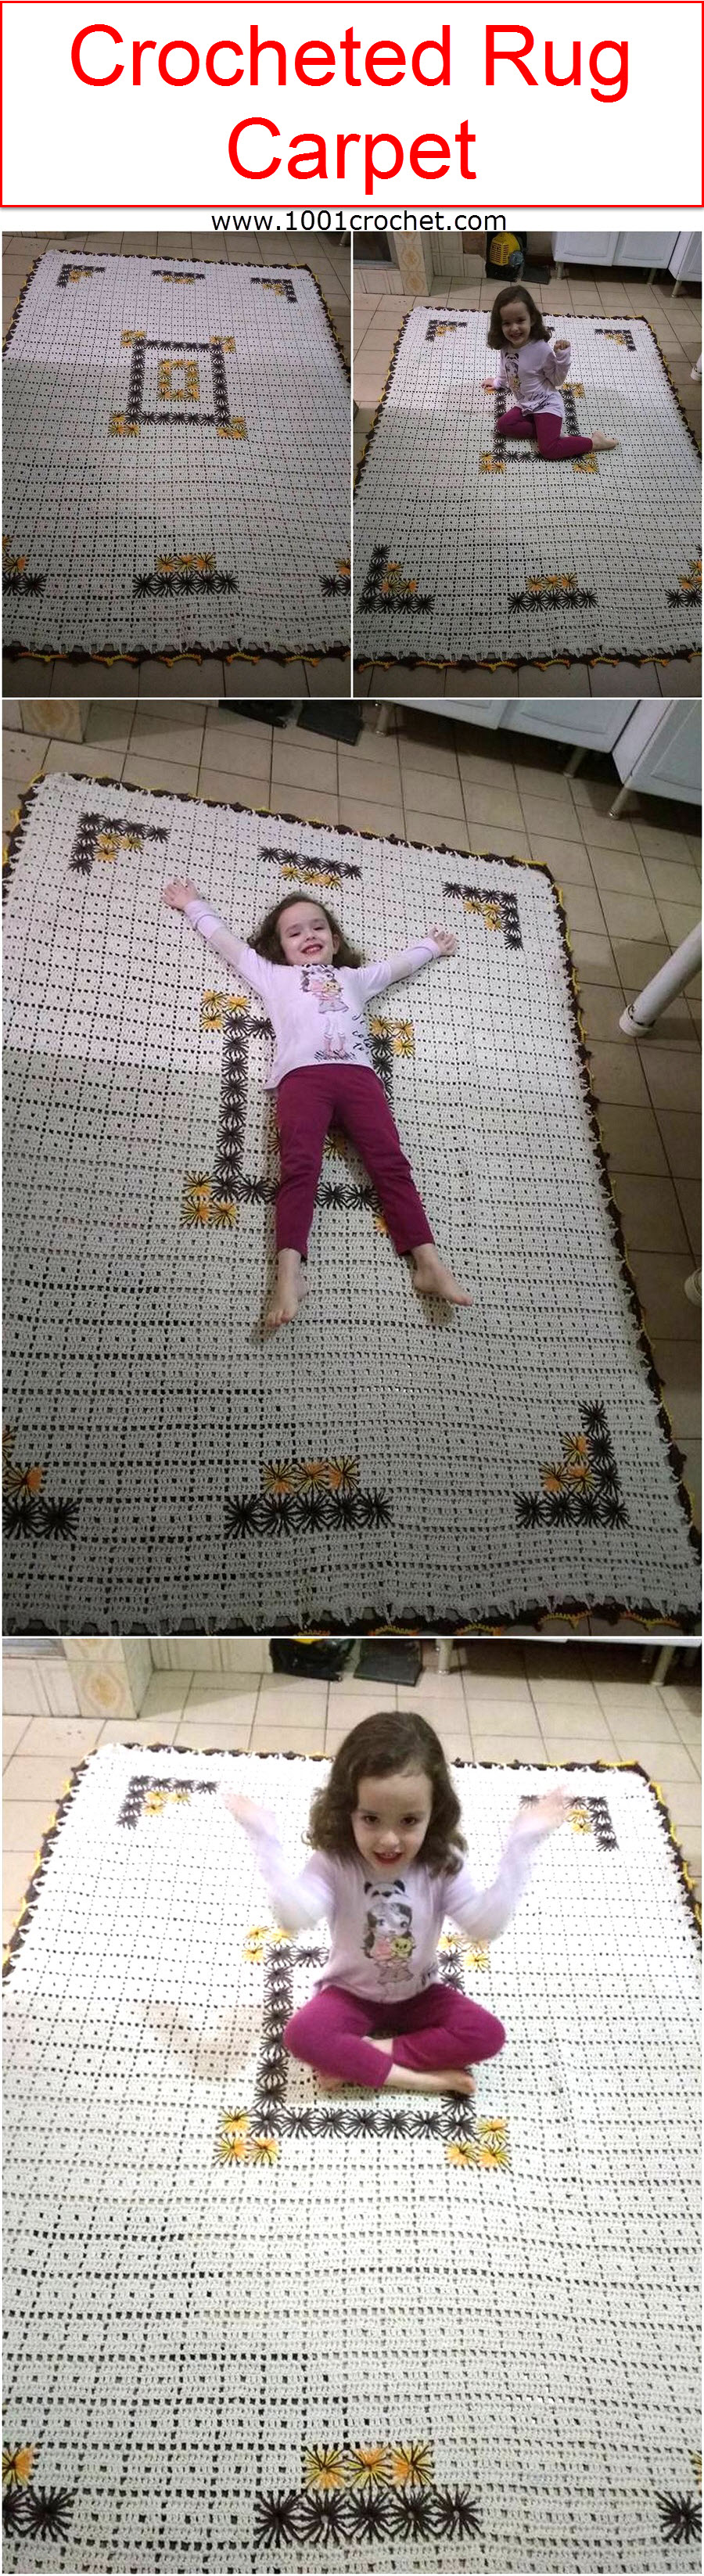 crocheted-rug-carpet